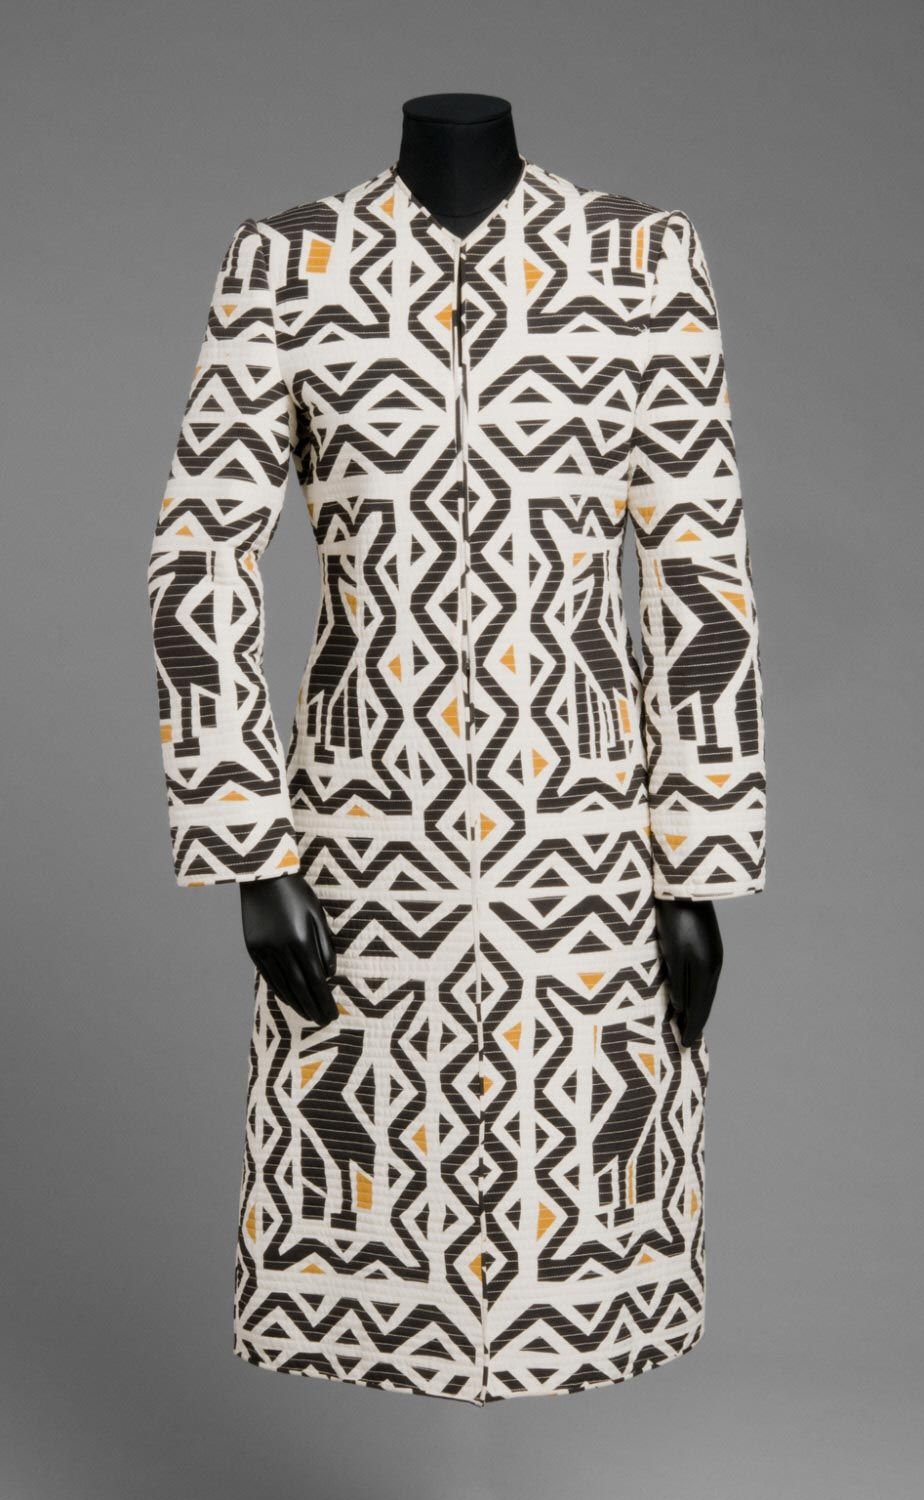 Woman's evening coat | Designer: Mary McFadden | United States, Spring-Summer 1987 | Black, tan and white printed quilted silk plain weave | This coat is from McFadden's 'Chapungo' collection inspired by Africa, where she lived for a number of years in the 1960's. The dramatic print features bird forms derived from the funerary totems of the Sakalava-Vezo people of Madagascar | The columnar coat is given a supple body by McFadden's signature narrow quilting | Philadelphia Museum of Art